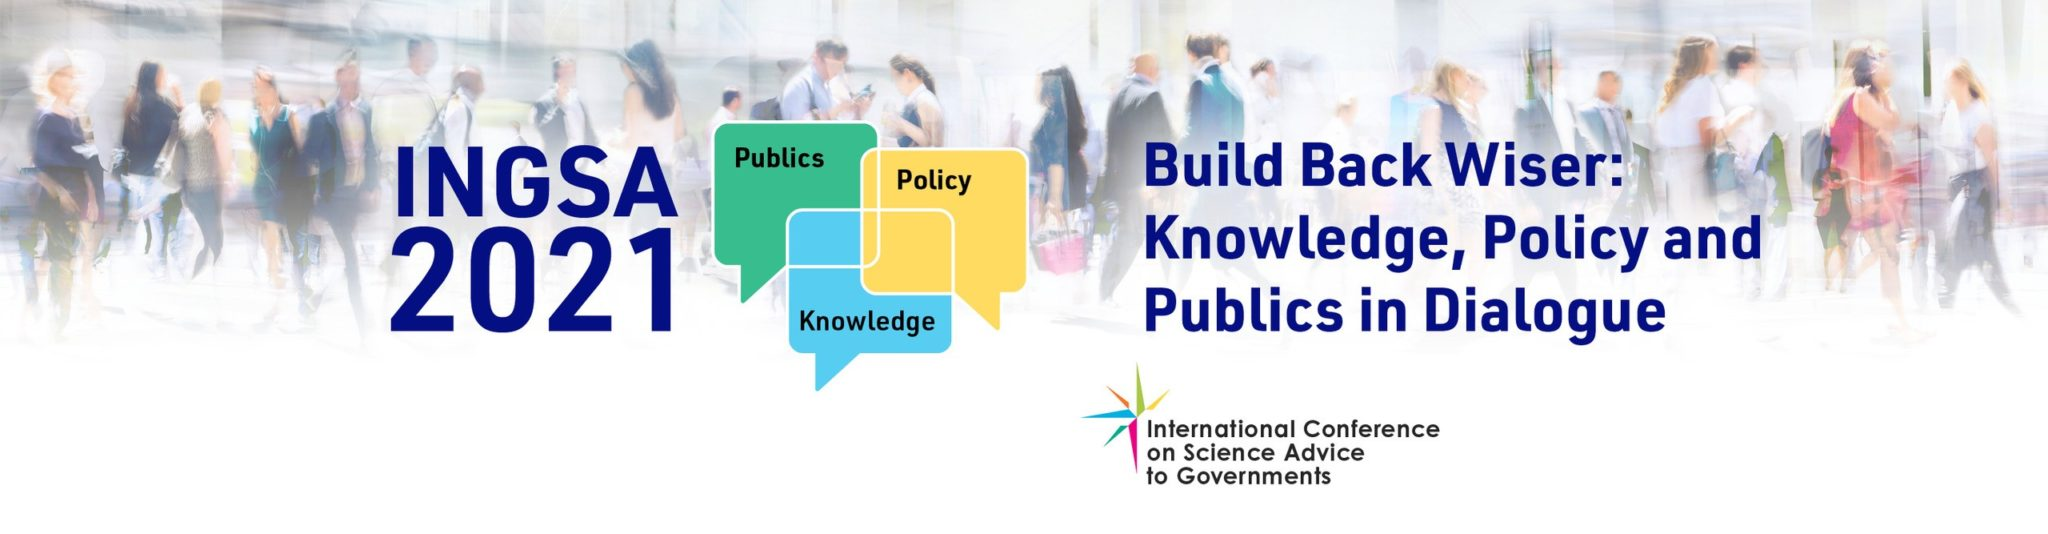 The 4th International Conference on Science Advice to Governments (INGSA) 2021